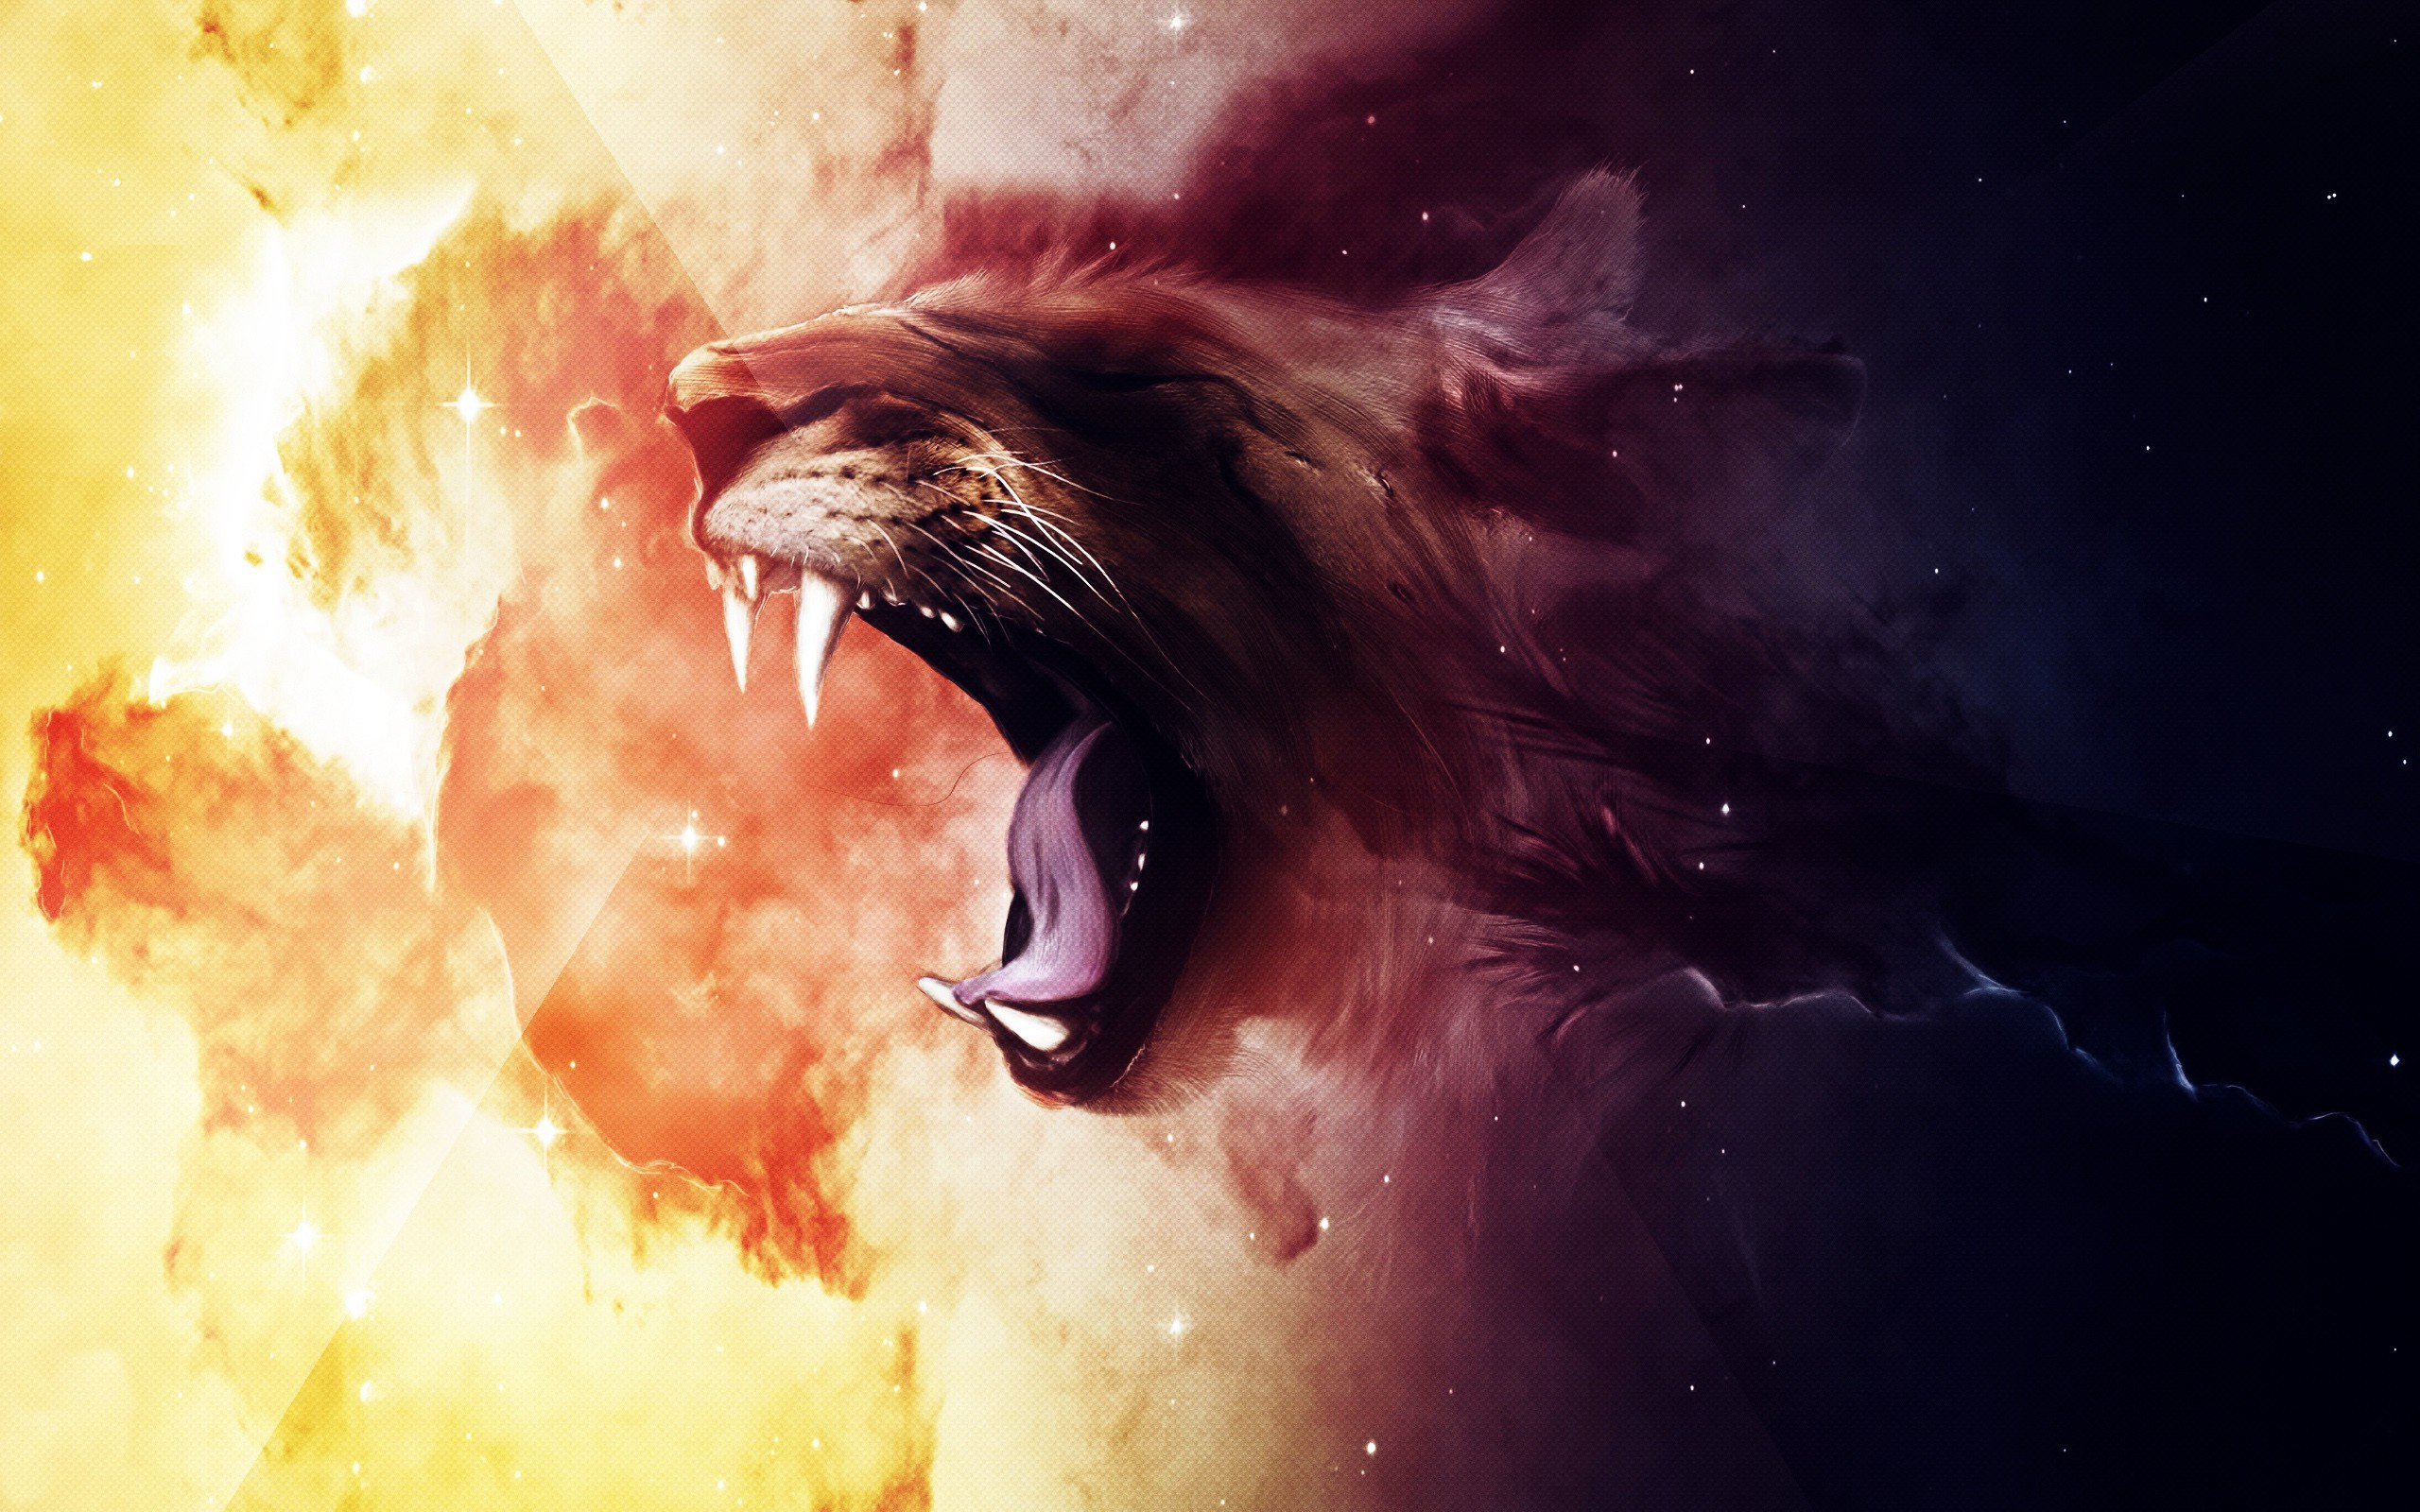 1366x768 roaring lion 1366x768 resolution hd 4k wallpapers, images